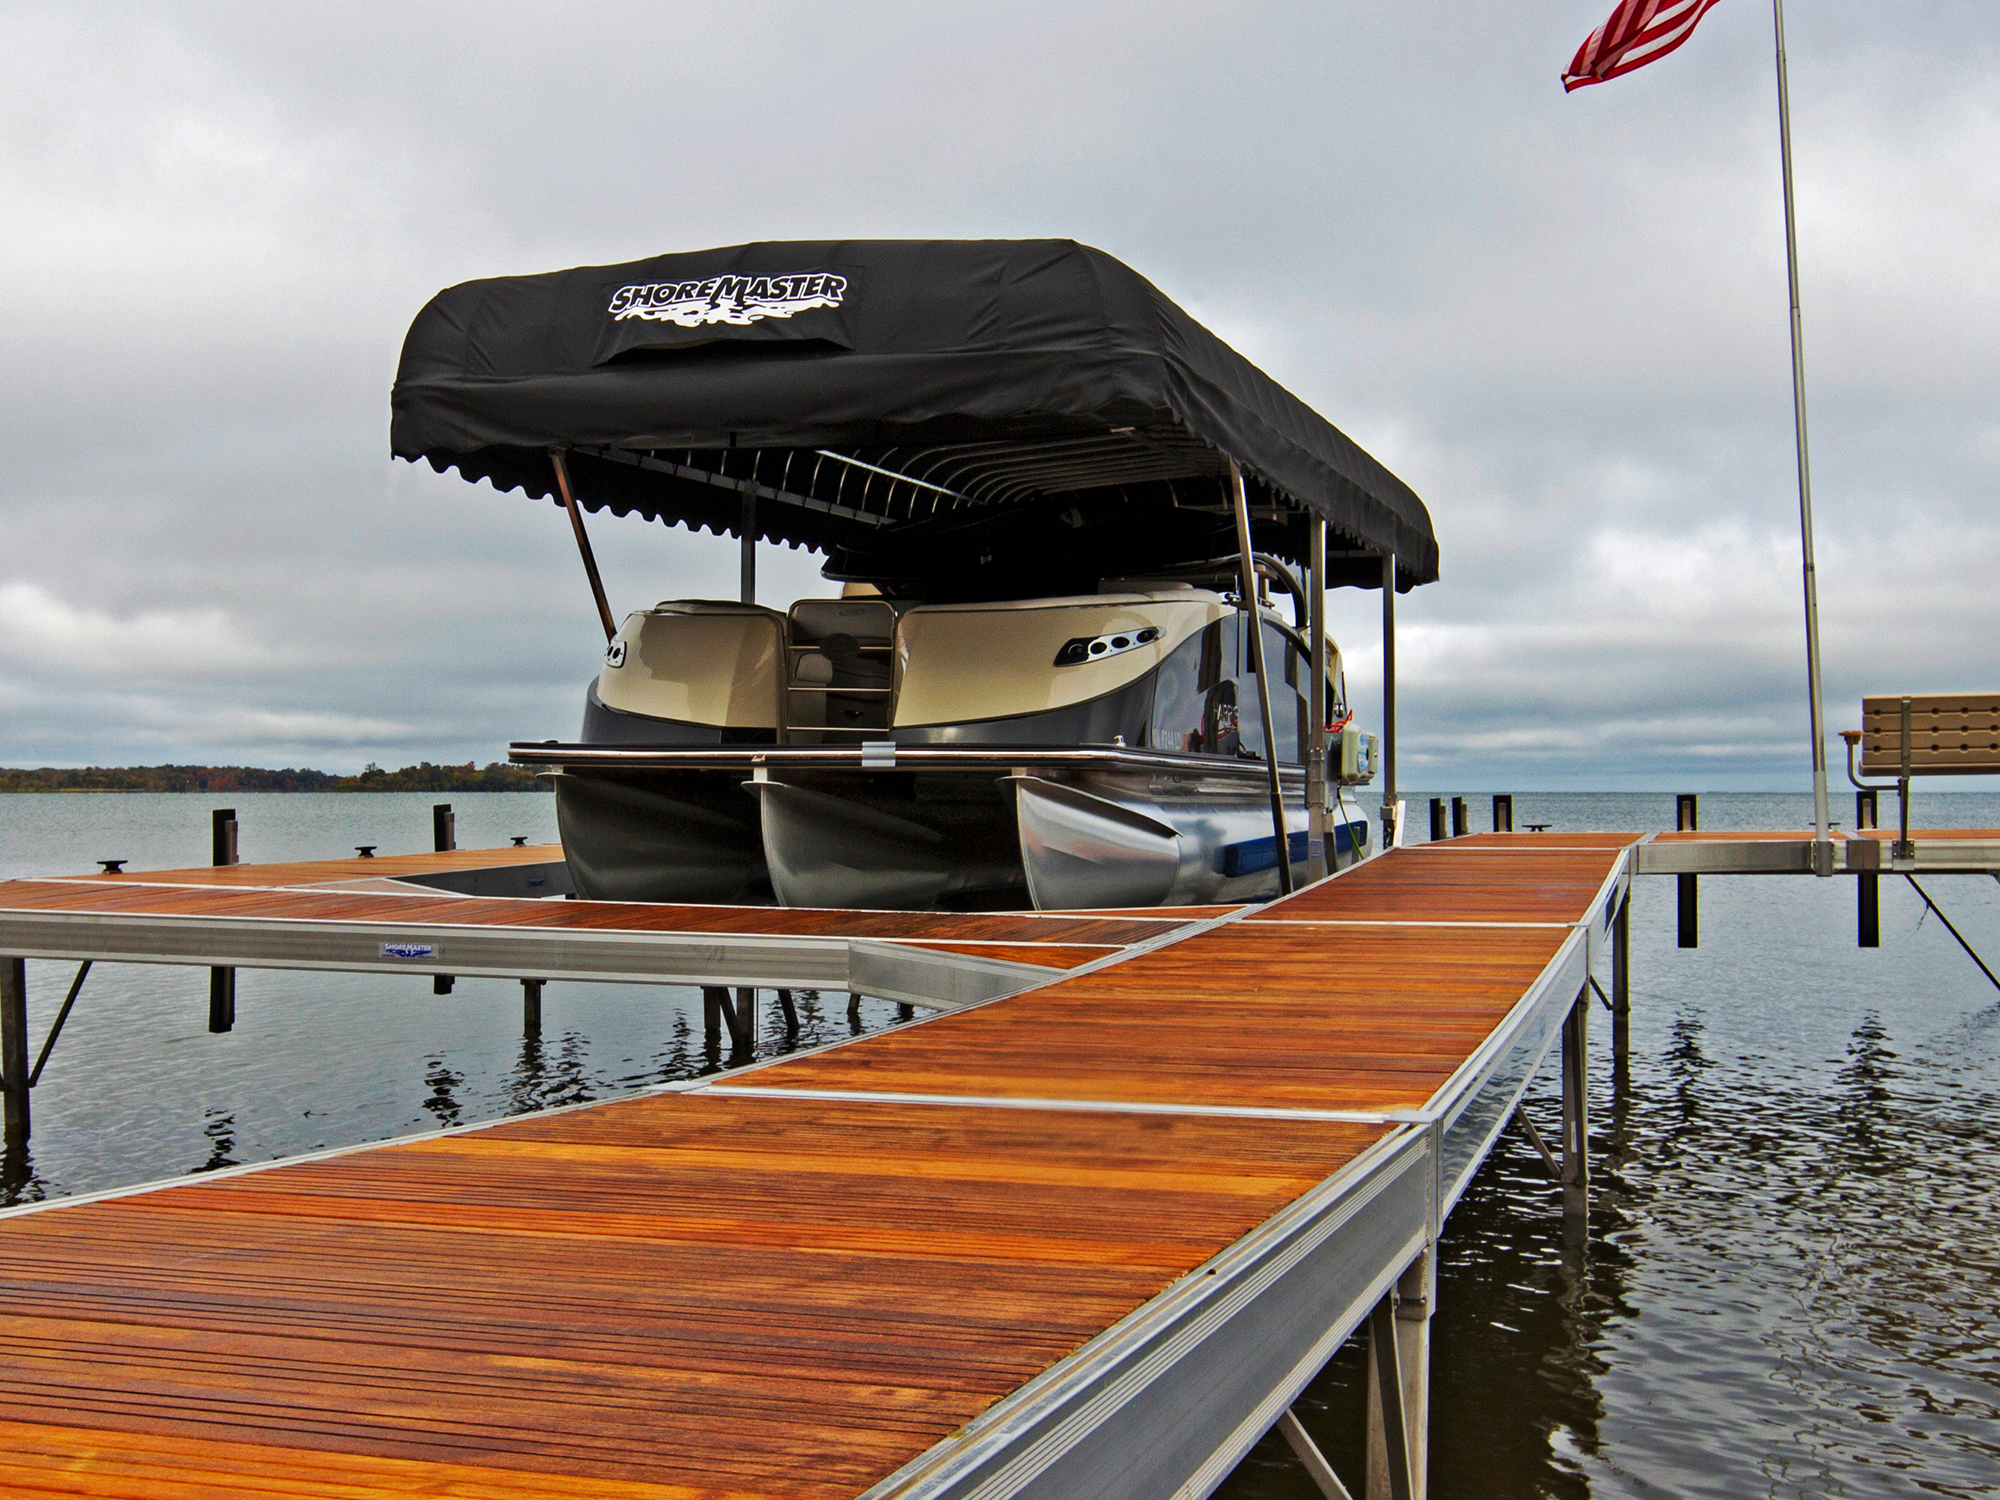 ShoreMaster RS7 Dock with IPE Decking and a Vertical Pontoon Light with Black Canopy